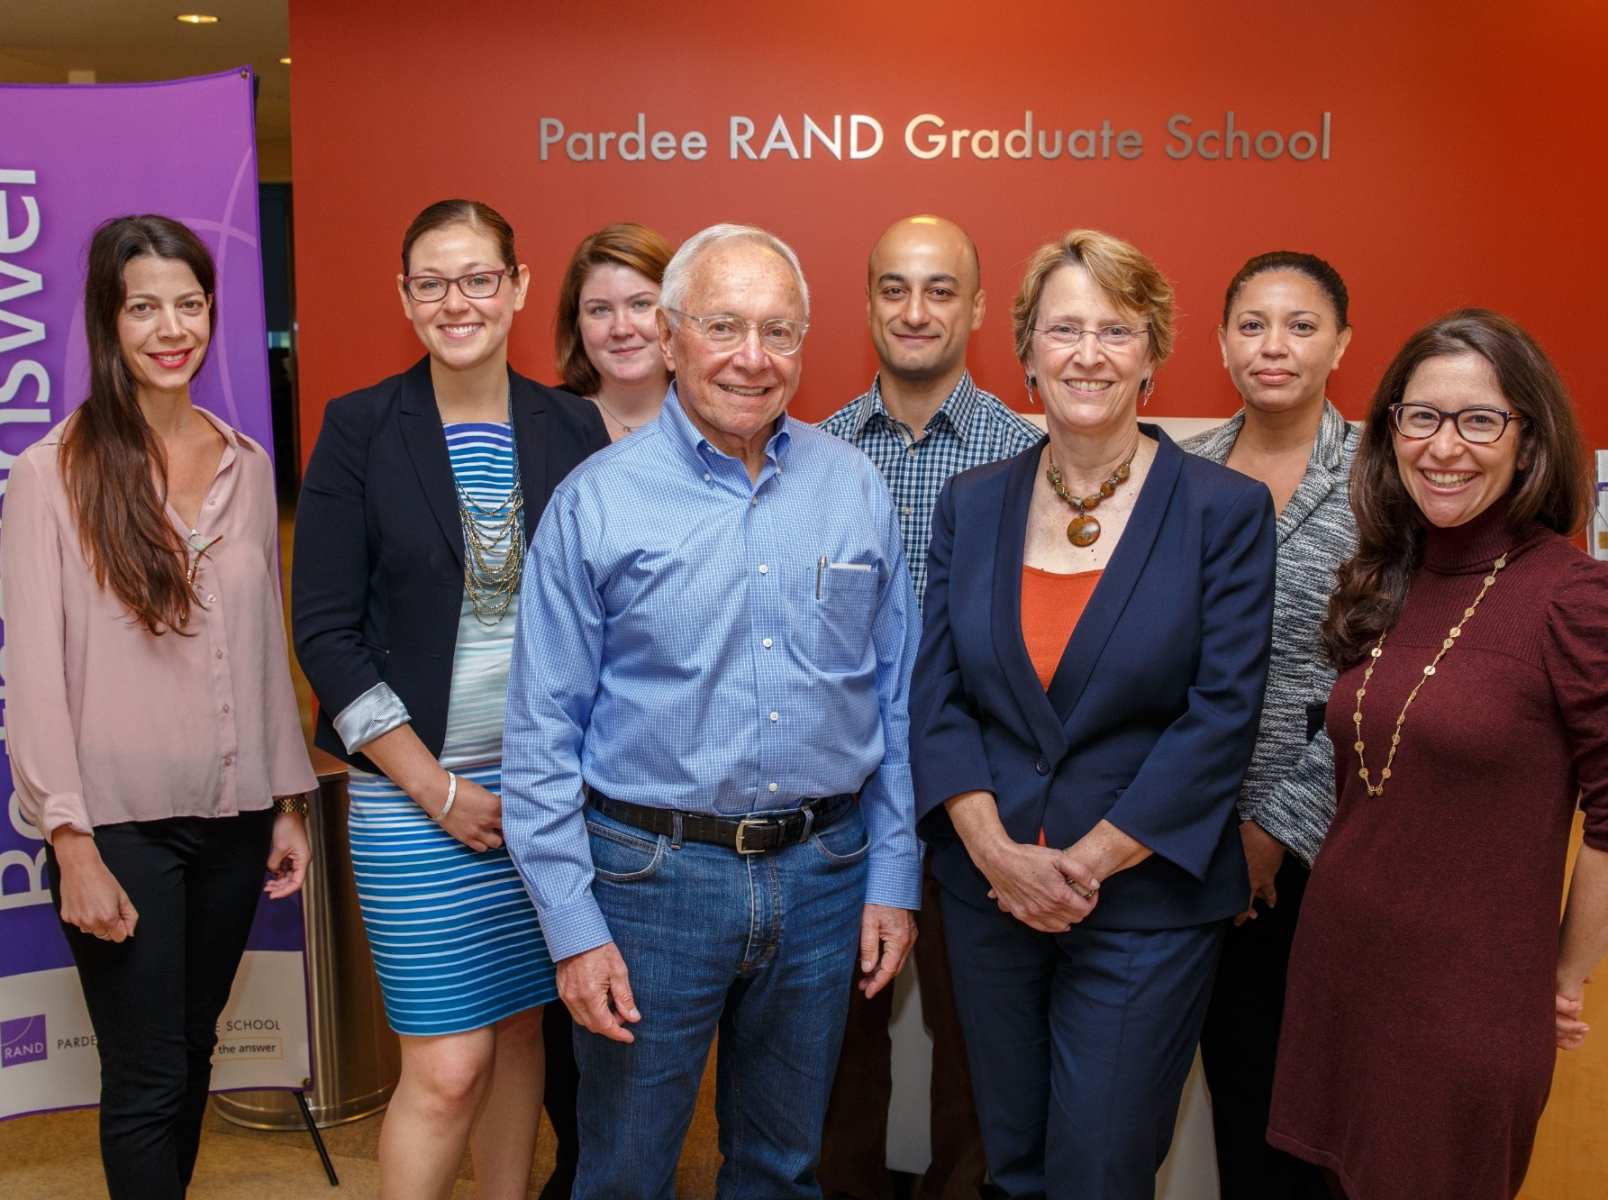 Pardee Rand Graduate School Receives 1 Million Gift